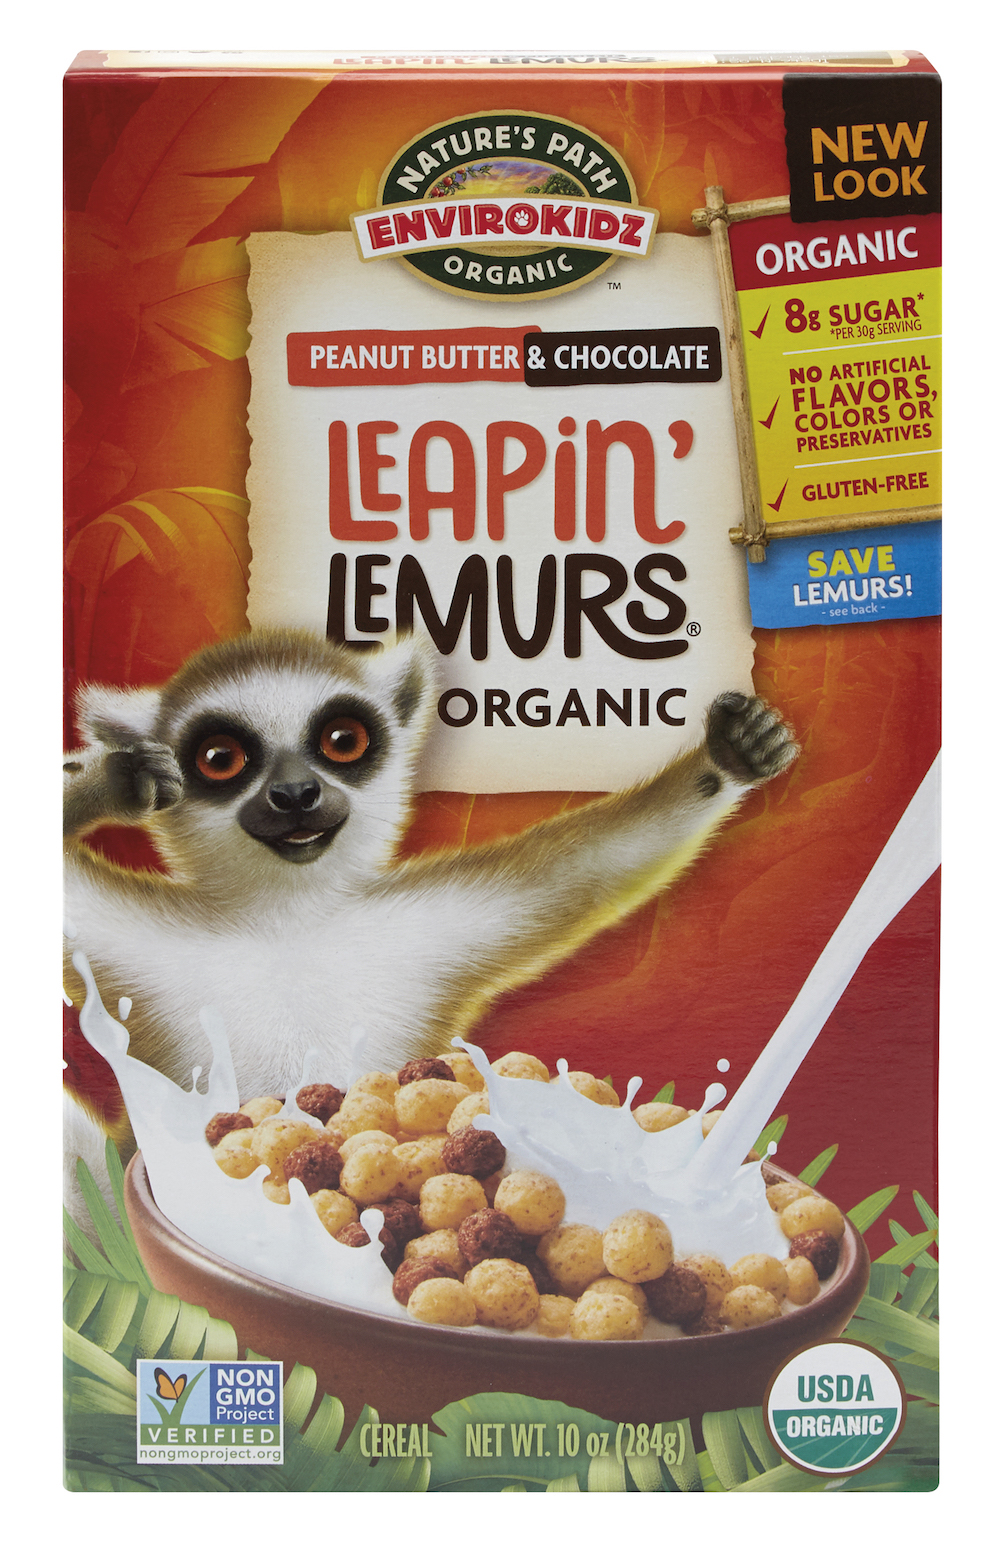 NATURES PATH_LEAPIN LEMURS_FRONT FACING.jpg